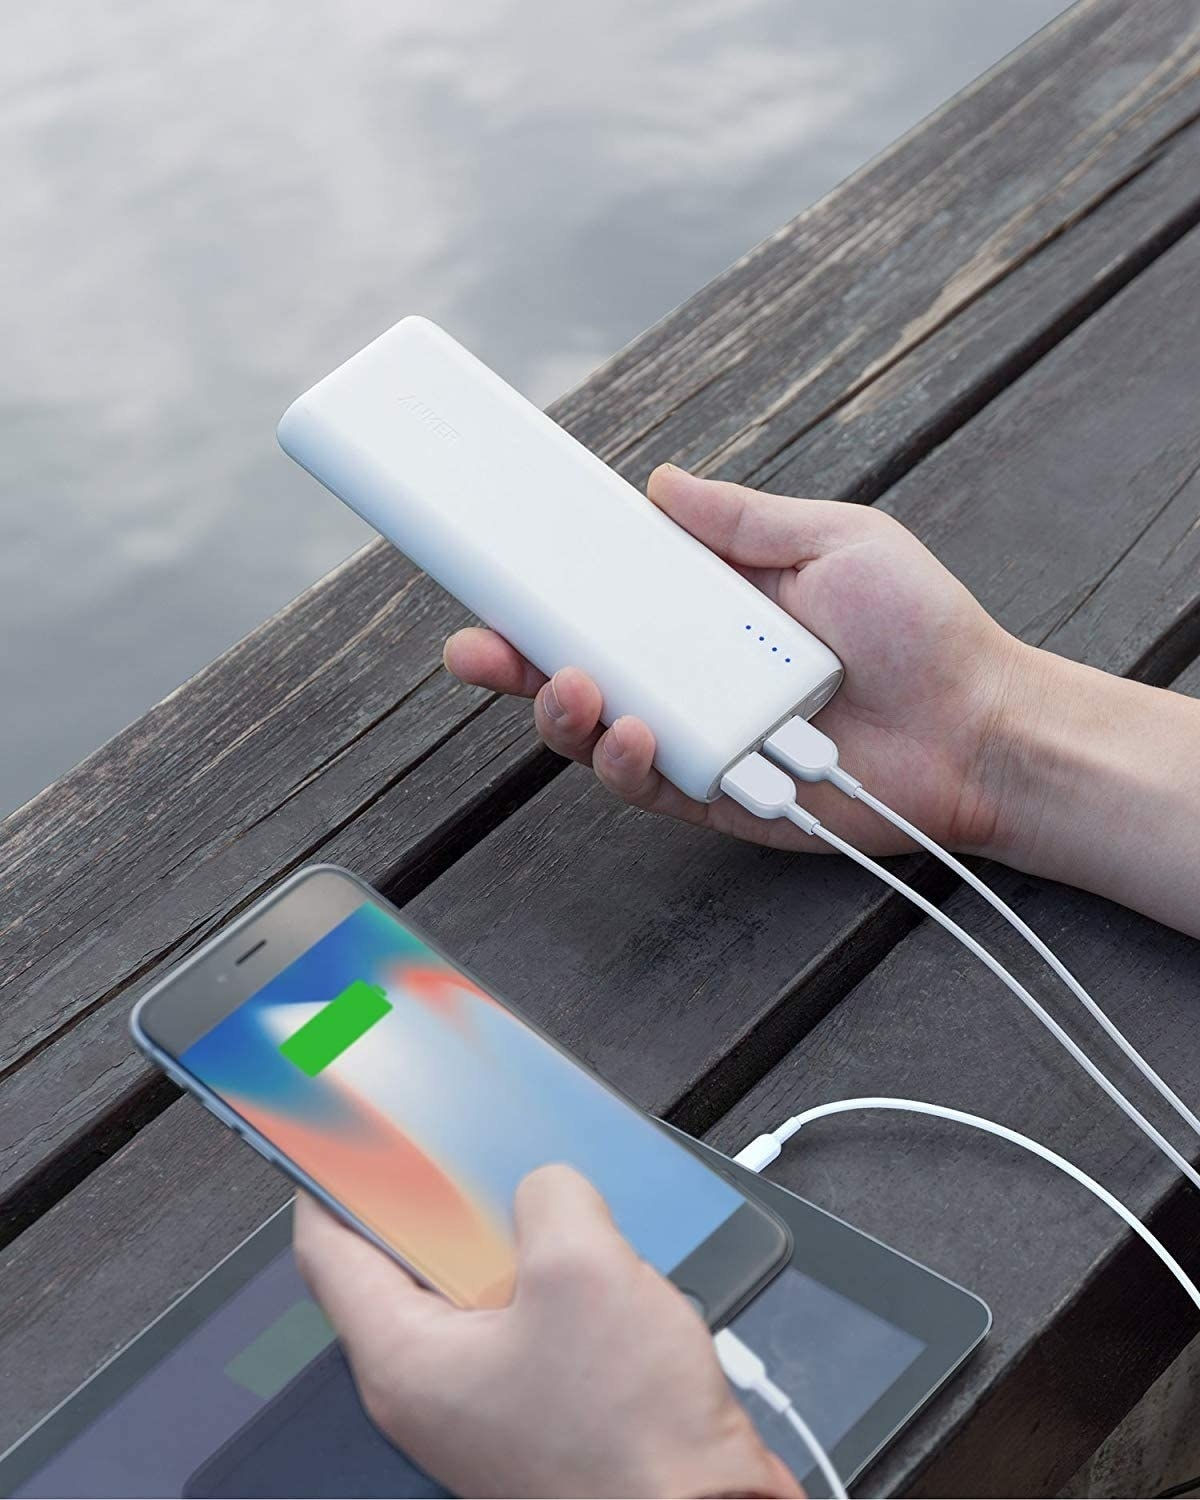 A person holding a slim rectangular power bank charger in their hand